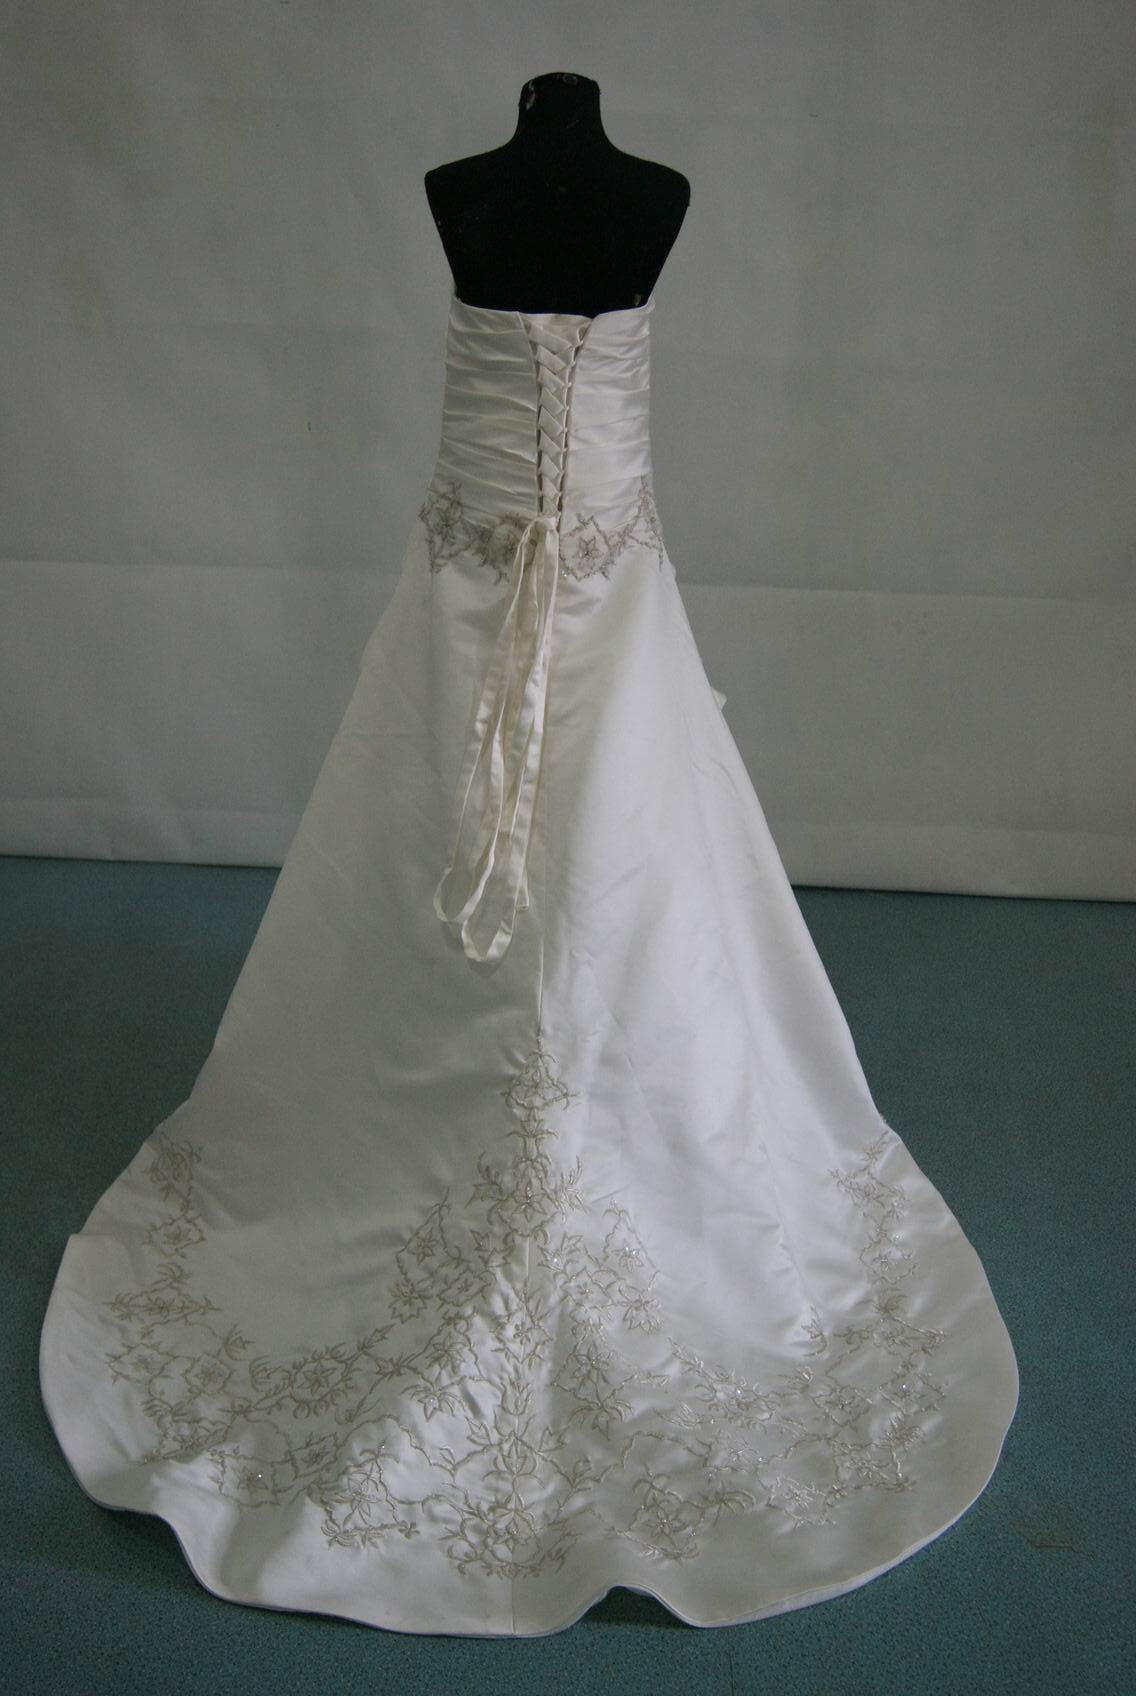 childrens wedding dress with lace up back